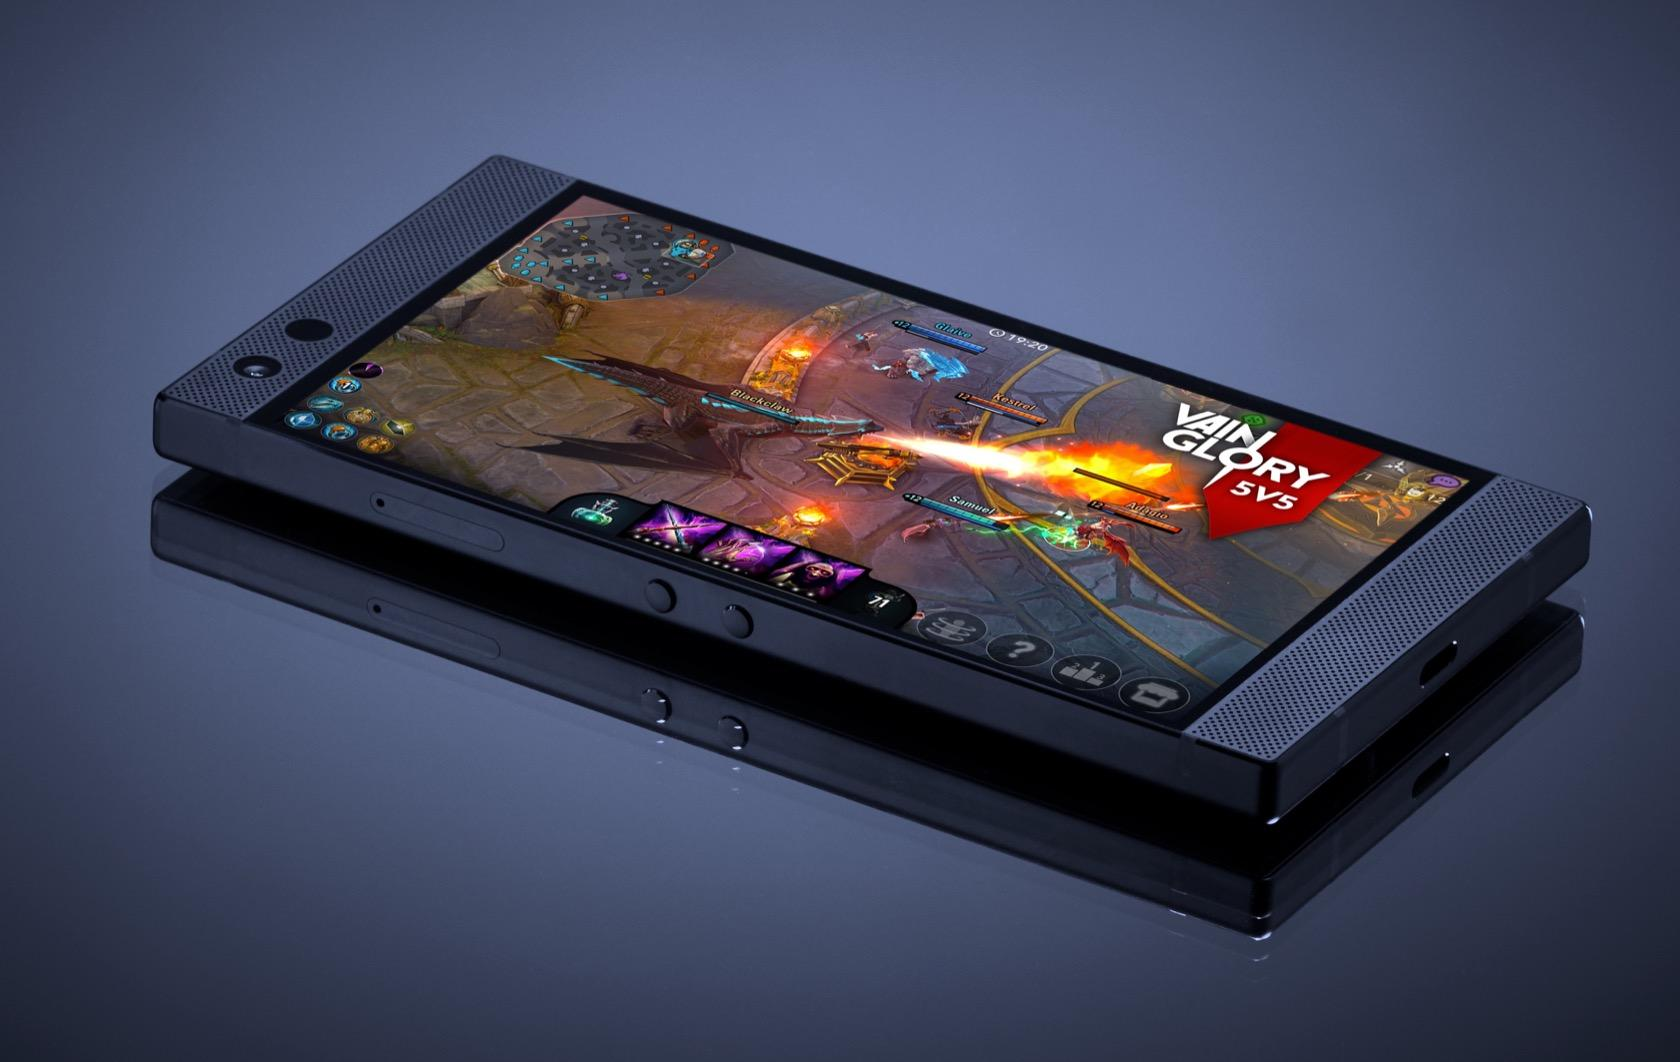 Razer Phone 2 official: Hands-on with the 120Hz mobile